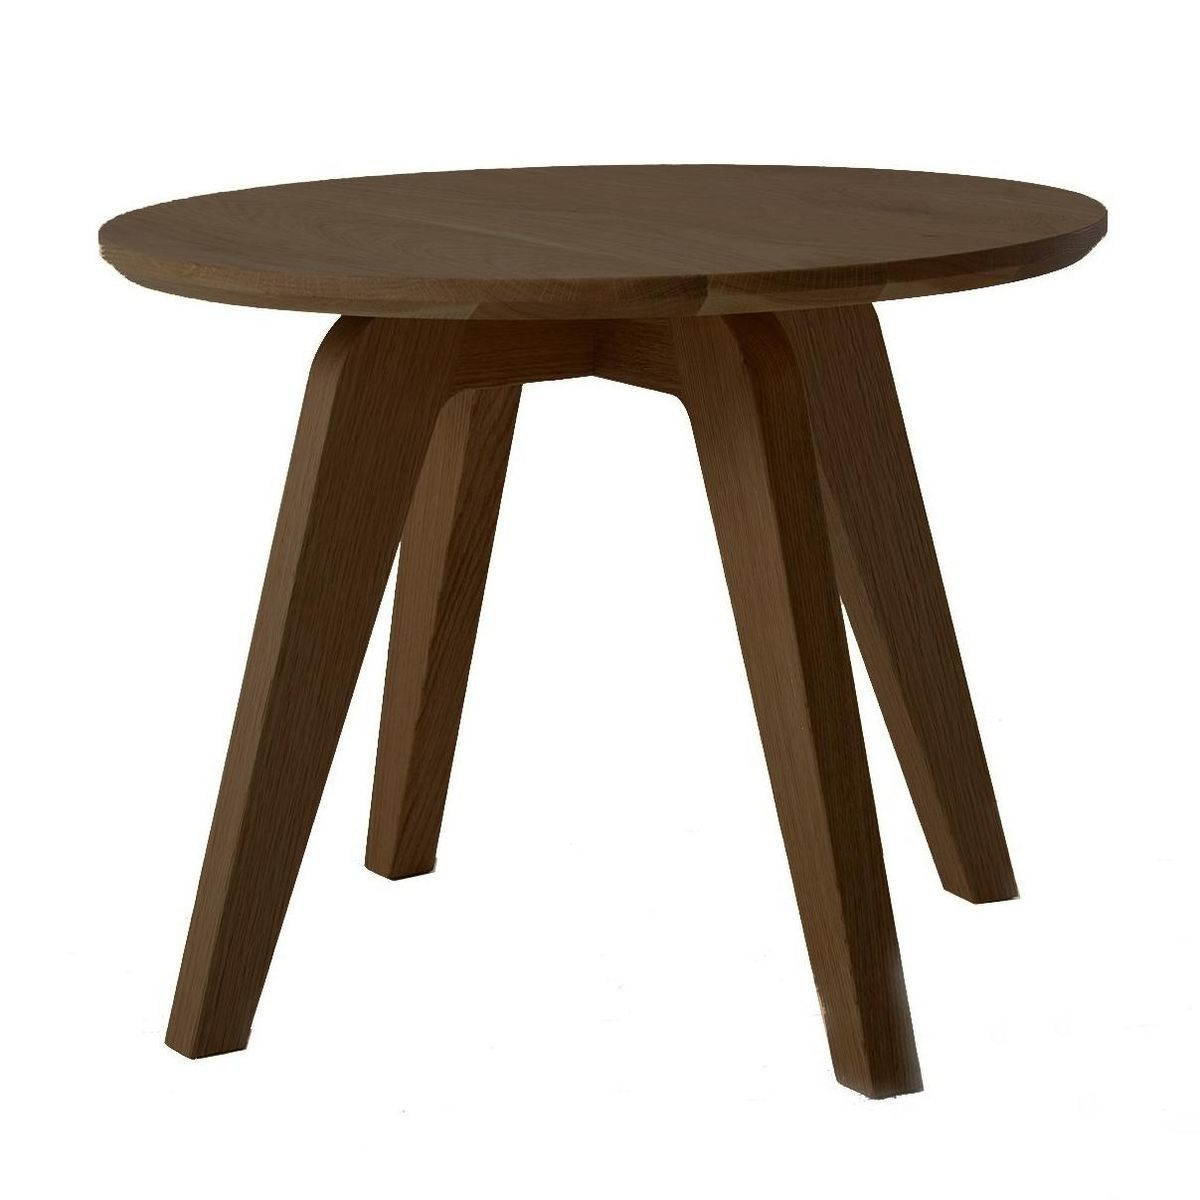 dweller table d 39 appoint bois massif jan kurtz tables en bois massif. Black Bedroom Furniture Sets. Home Design Ideas